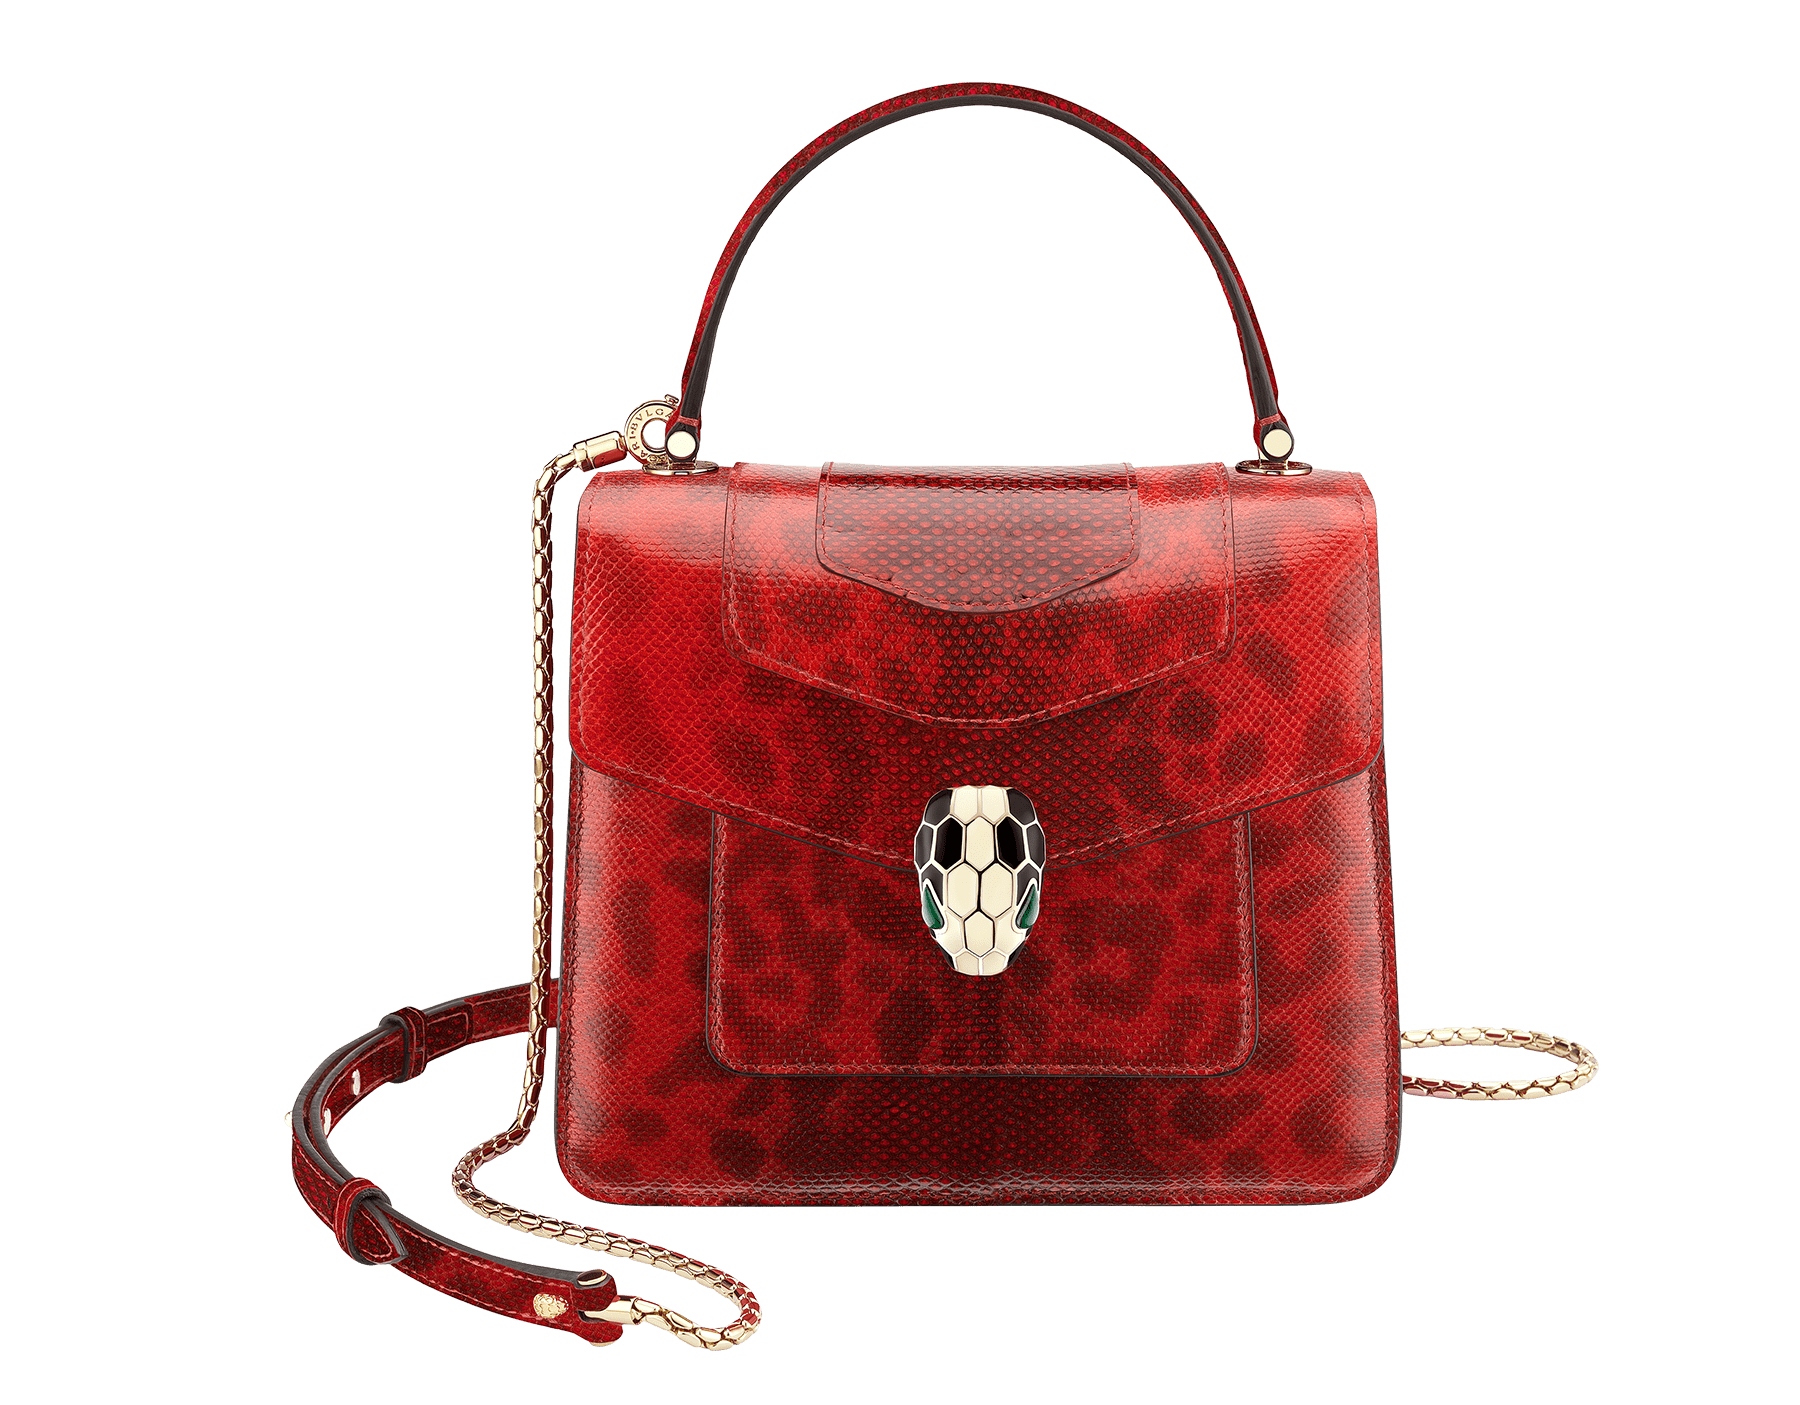 """""""Serpenti Forever """" crossbody bag in mint shiny karung skin. Iconic snakehead closure in light gold plated brass enriched with black and white enamel, and green malachite eyes. 752-SKb image 1"""